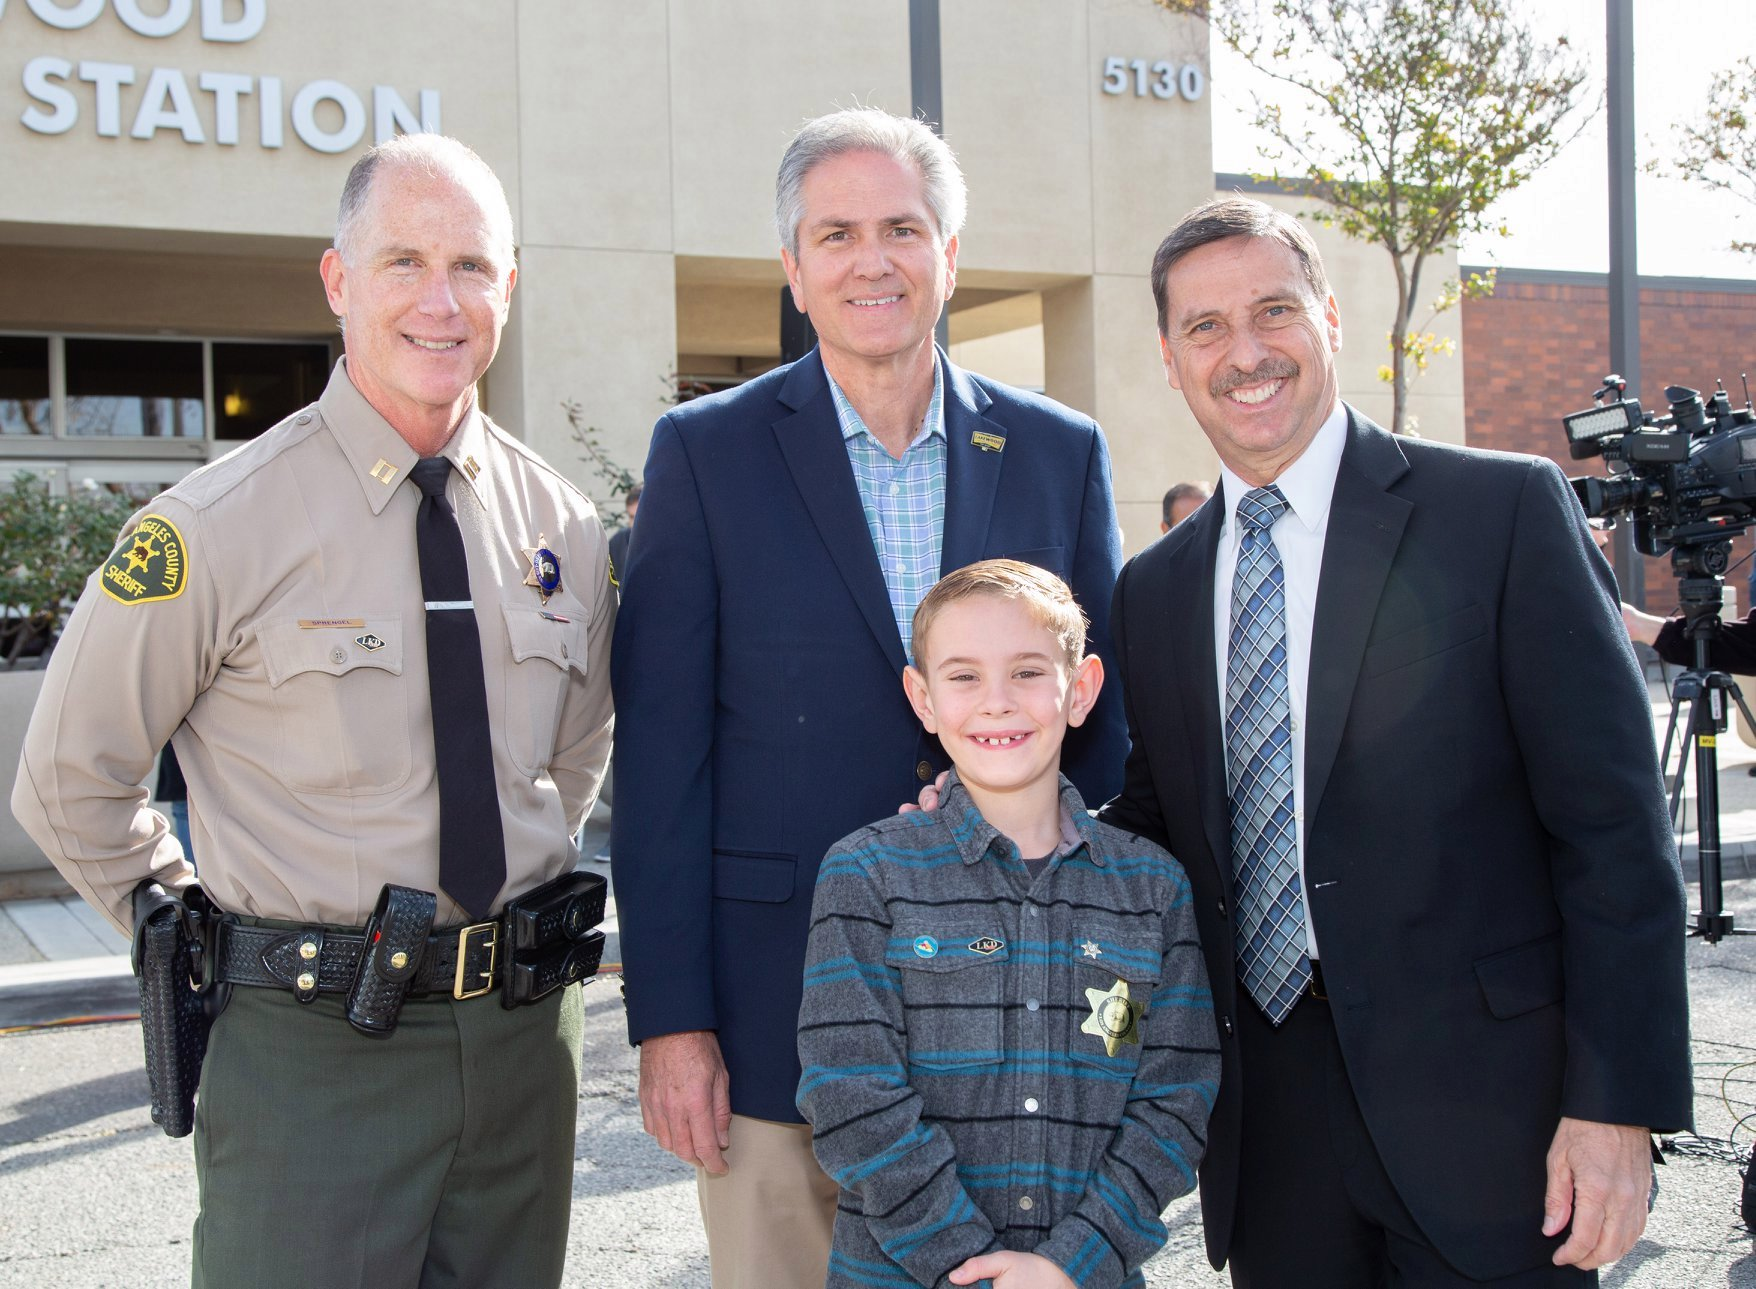 Jaxon Opdyke, 8, is seen with Lakewood city officials on Feb. 5, 2020. (Credit: Lakewood Sheriff's Station)